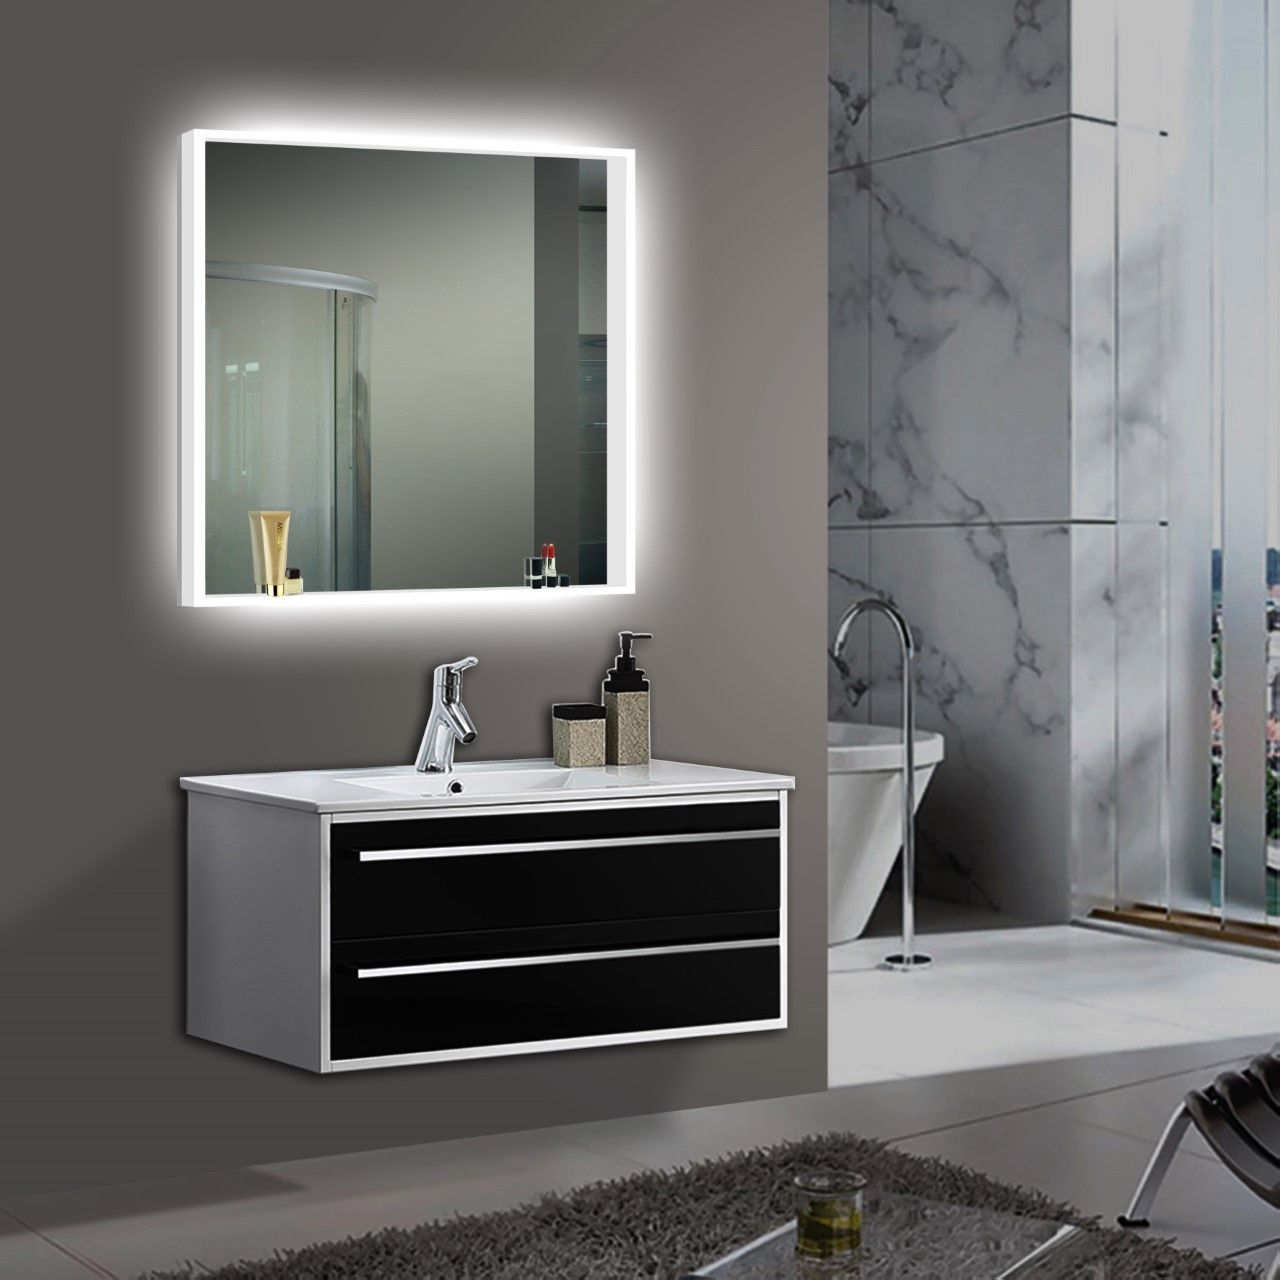 Exceptionnel Bathrom Mirror  Lighted Bathroom Mirror Acrylic Size: H:42 X W:42 X D:2  Inches   Dimmable With Dimmer Switch   110 V Wiring   Led Commercial Grade  CRI 90+ ...